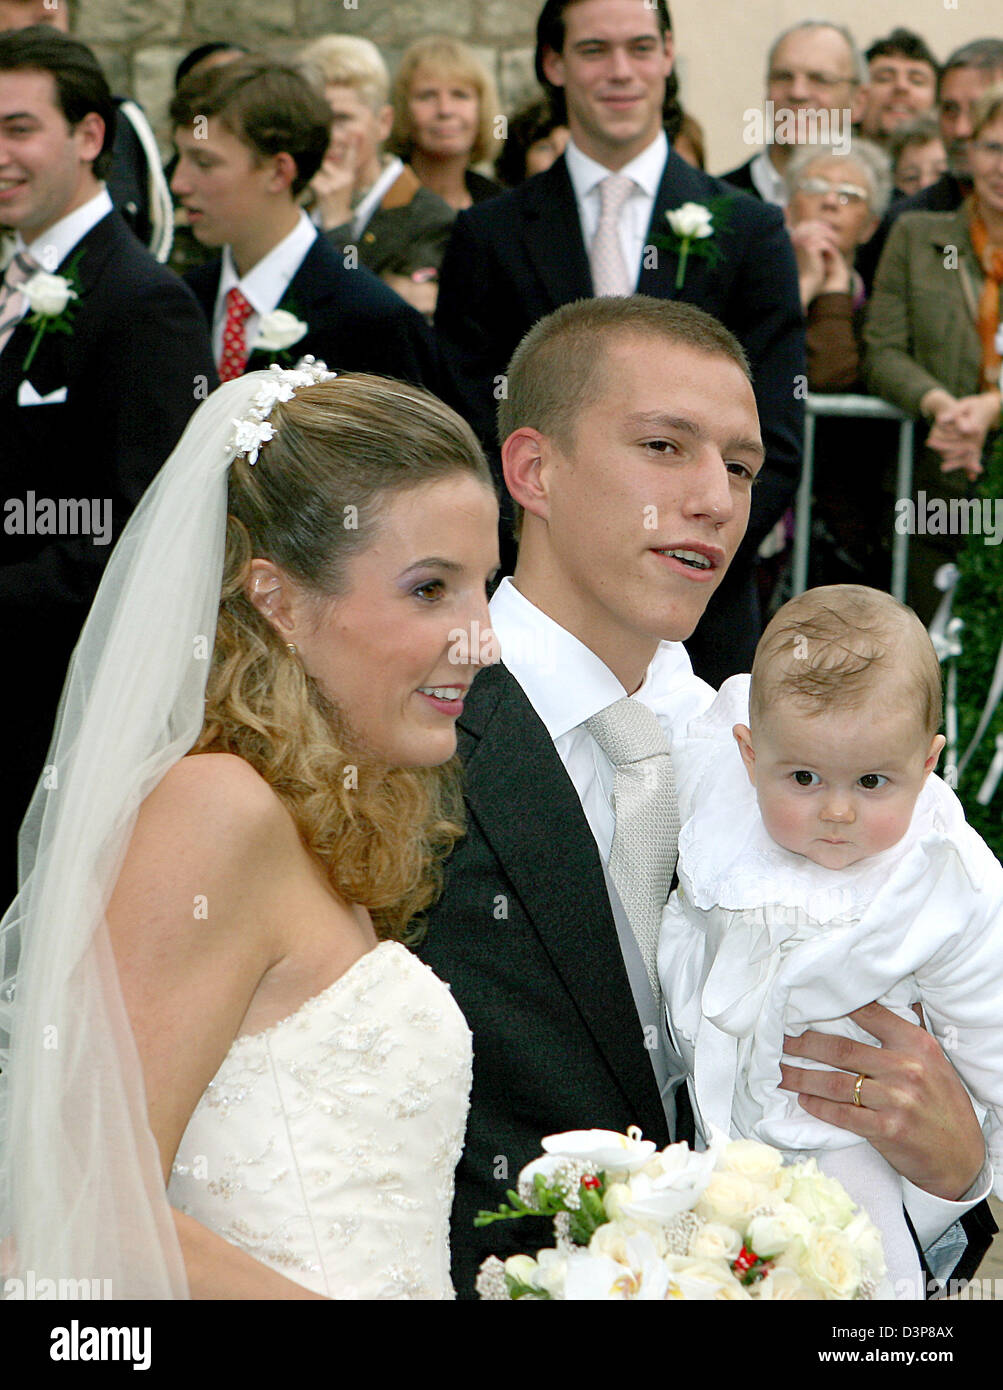 Bride Tessy Antony L Groom Prince Louis Of Luxembourg And Their